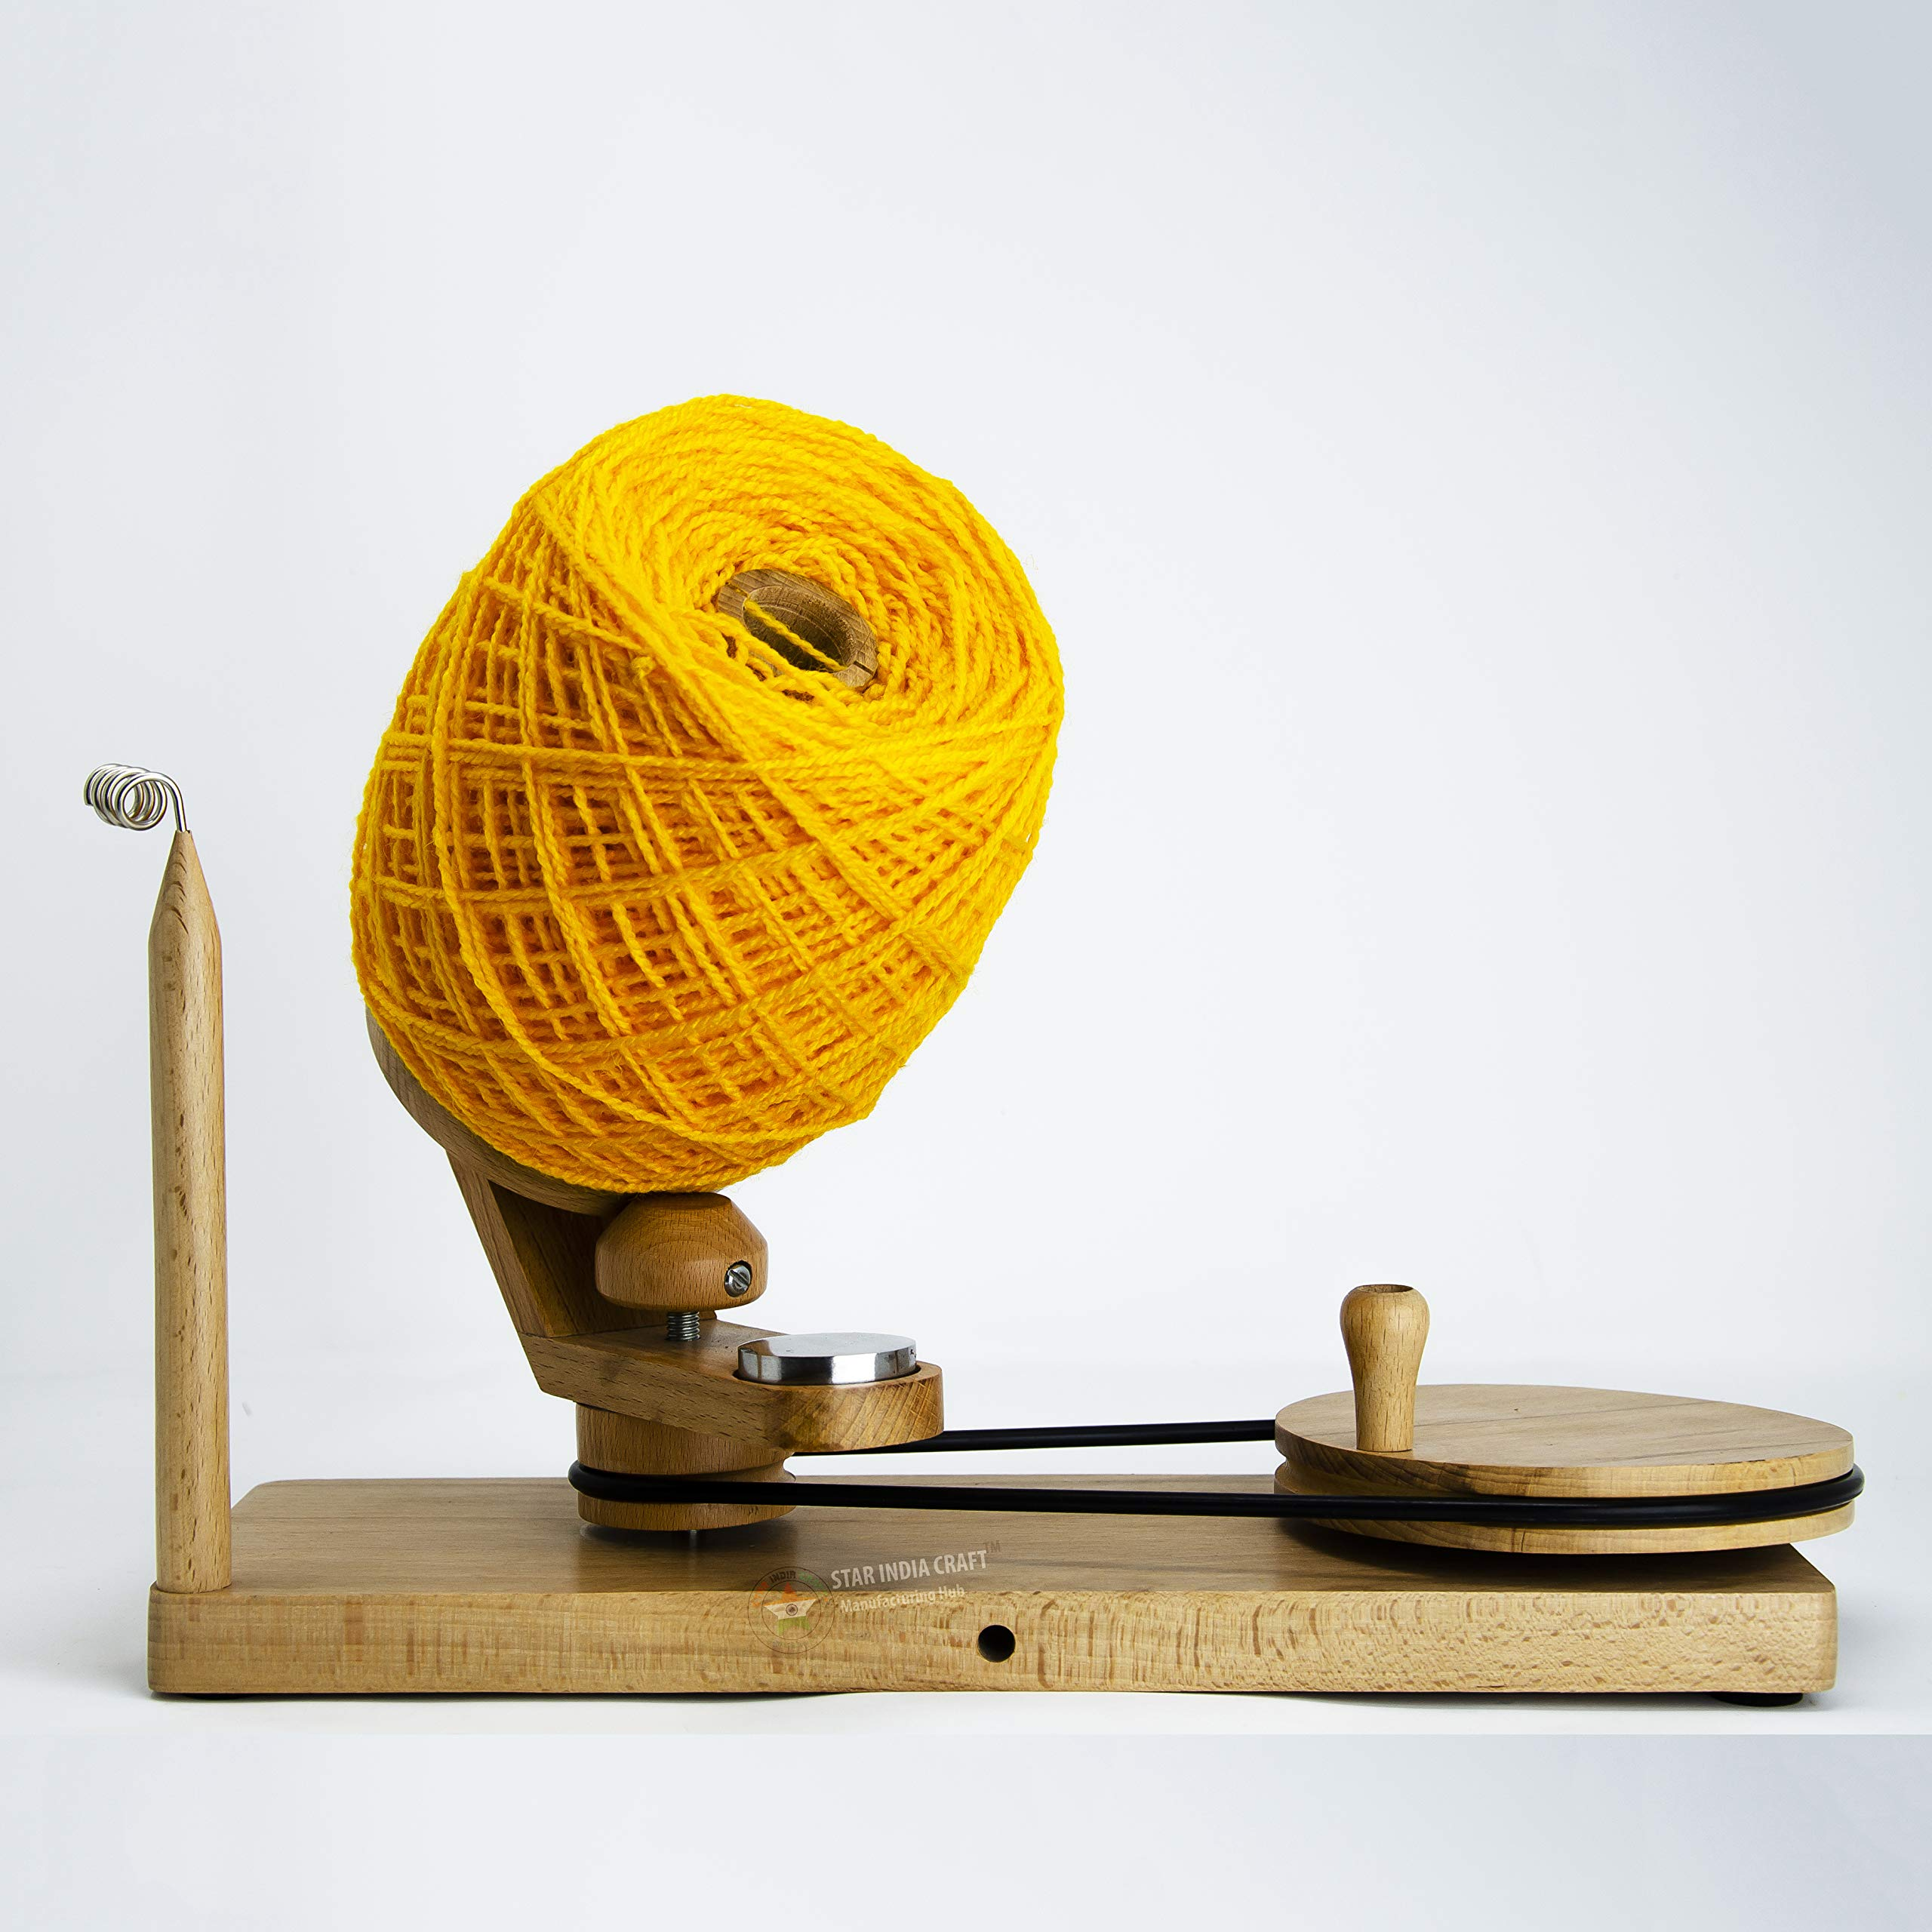 STAR INDIA CRAFT Handmade Center Pull Yarn Ball Winder - Natural Yarn Winder | Perfect DIY Knitter's Gifts for Knitting and Crocheting | Handcrafted Ball Winder (Yarn Winder, Standard) by STAR INDIA CRAFT (Image #6)